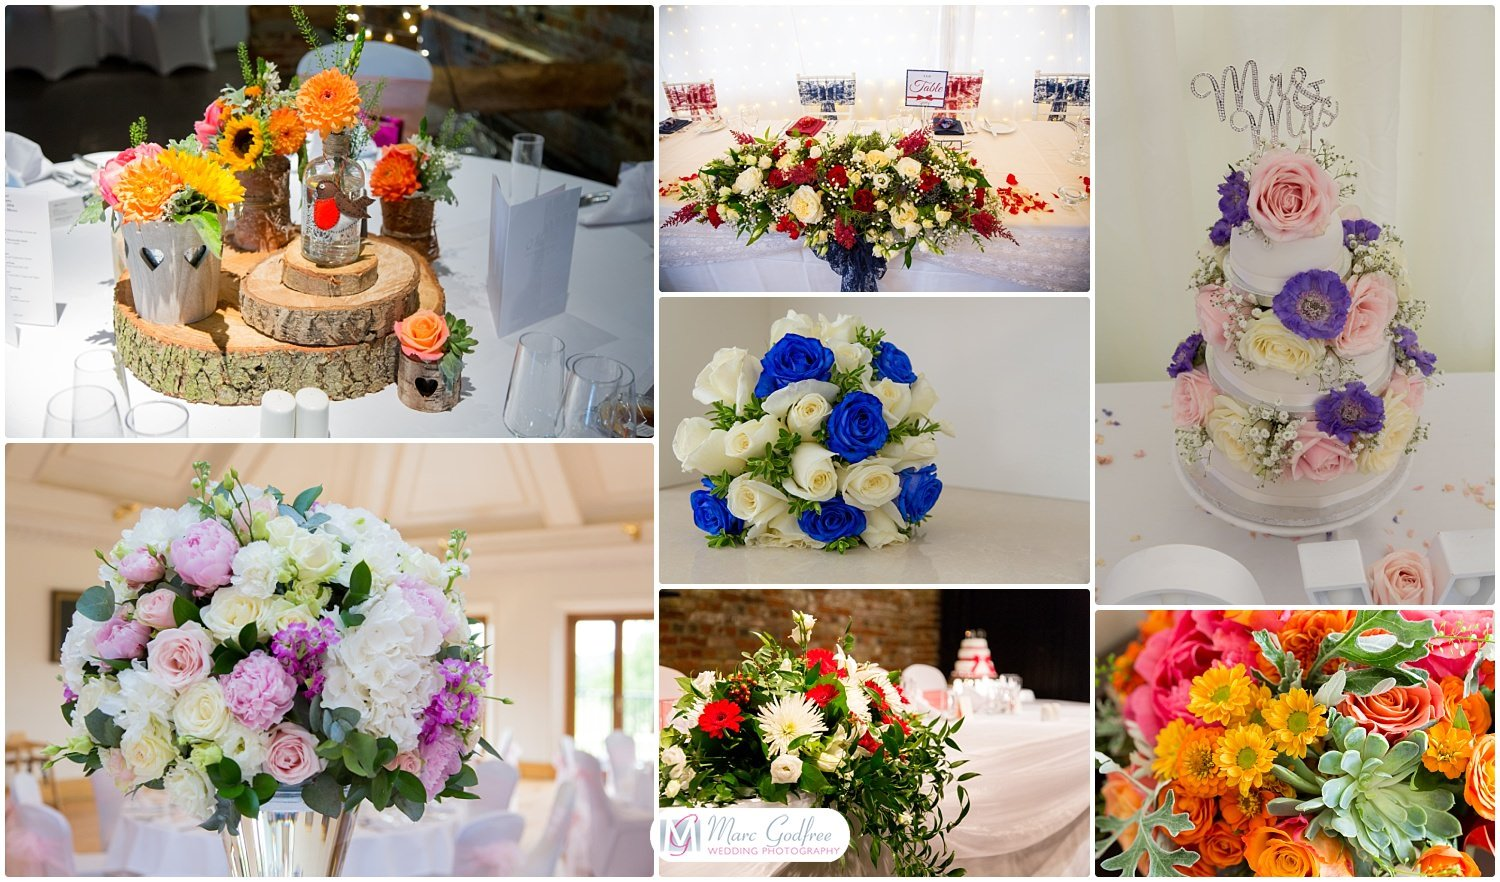 How to choose a wedding theme - Look to colours